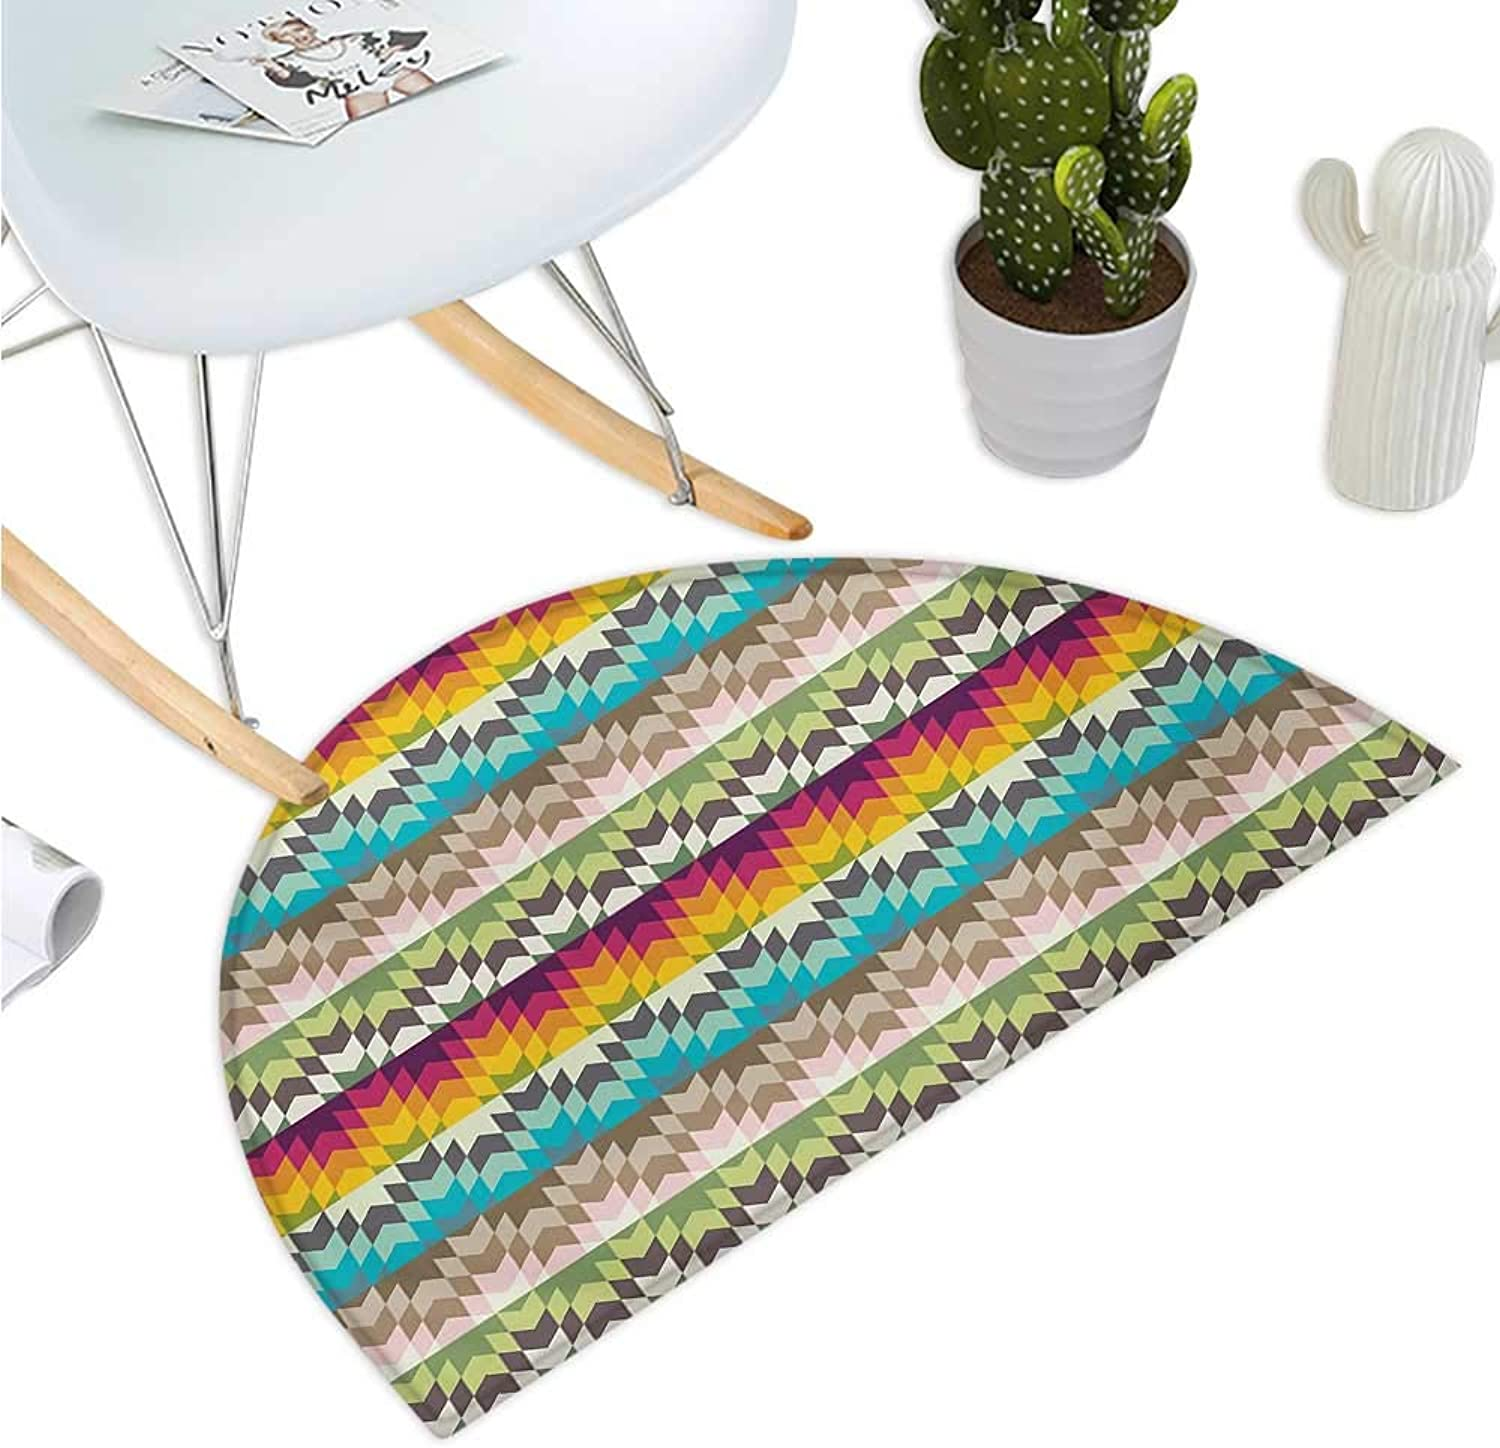 Geometric Semicircle Doormat Ethnic Tribal Pattern with Geometric Primitive Effects in Contrast colors Artwork Halfmoon doormats H 47.2  xD 70.8  Multicolor